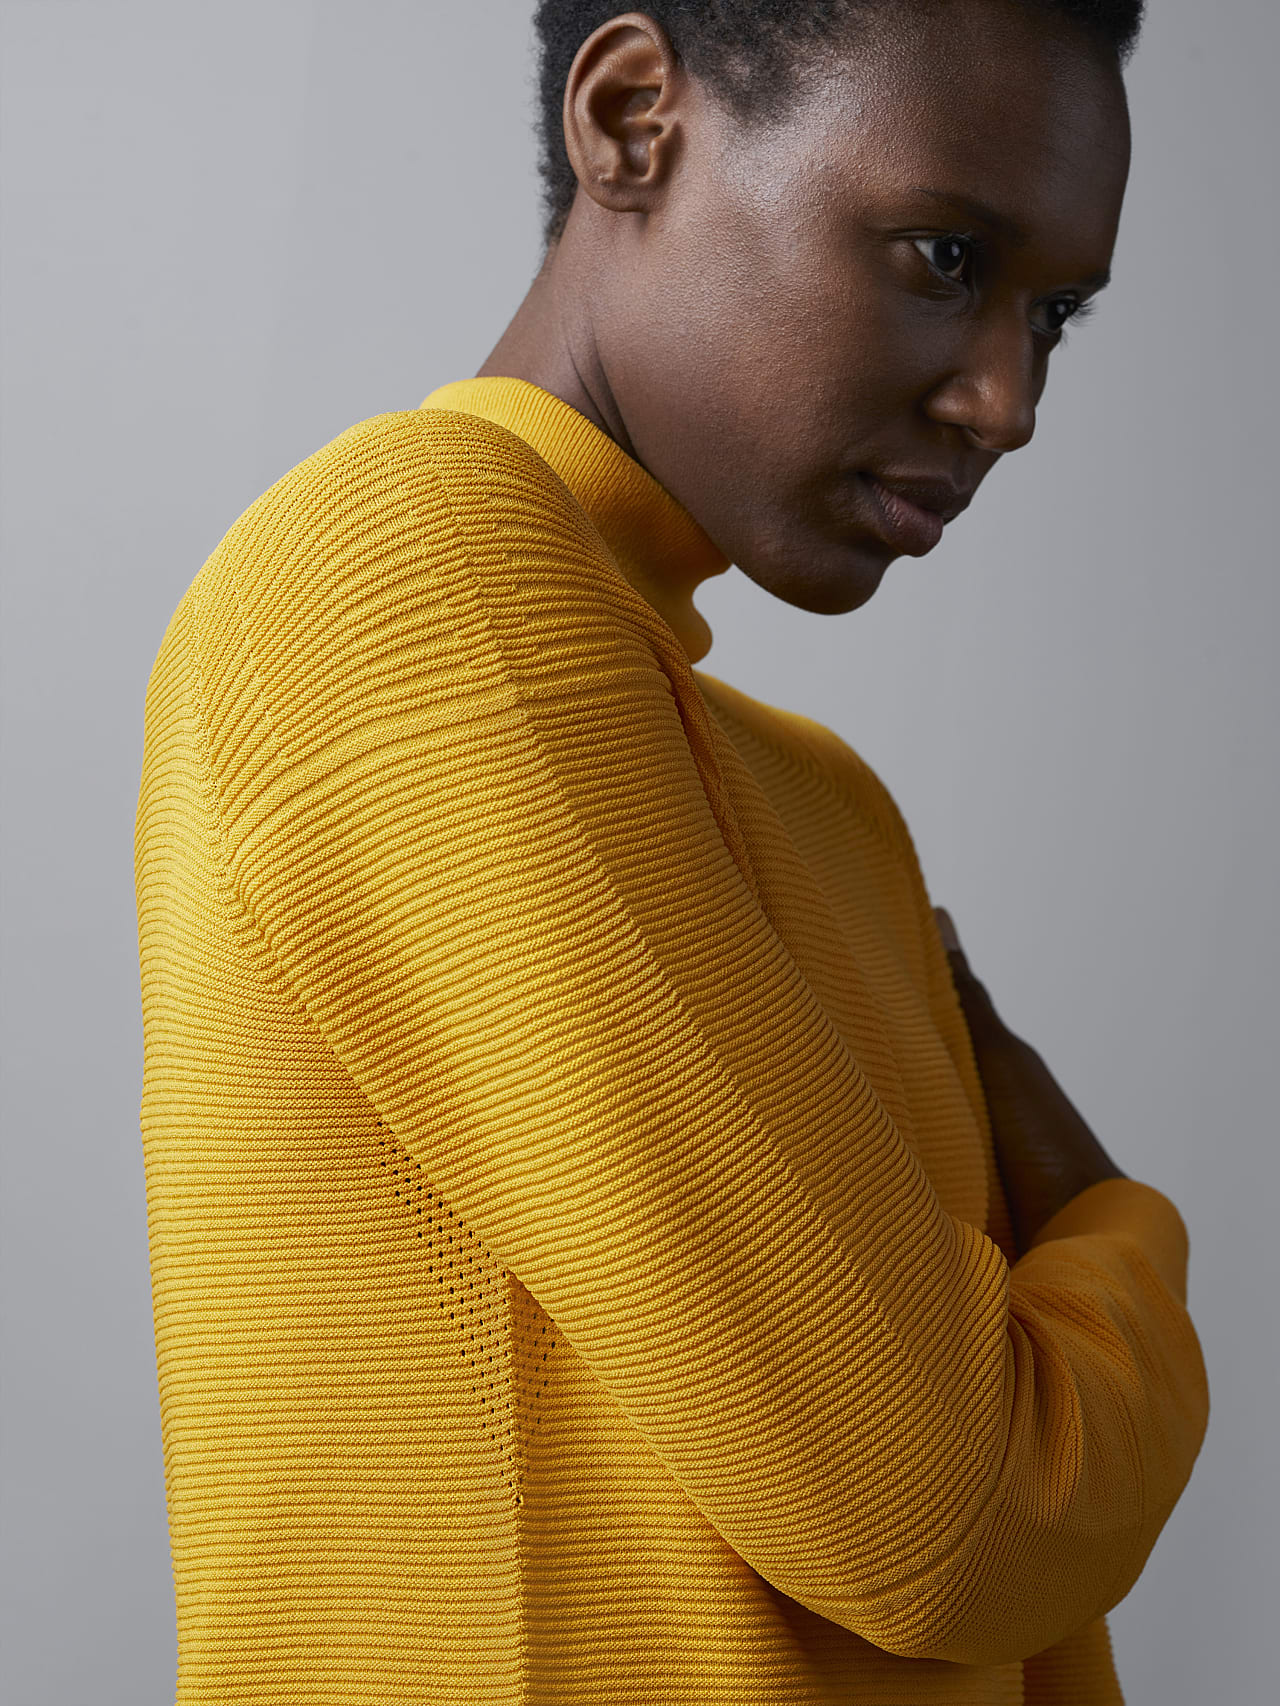 FOXEE V1.Y5.02 Seamless 3D Knit Mock-Neck Dress yellow scene7.view.9.name Alpha Tauri